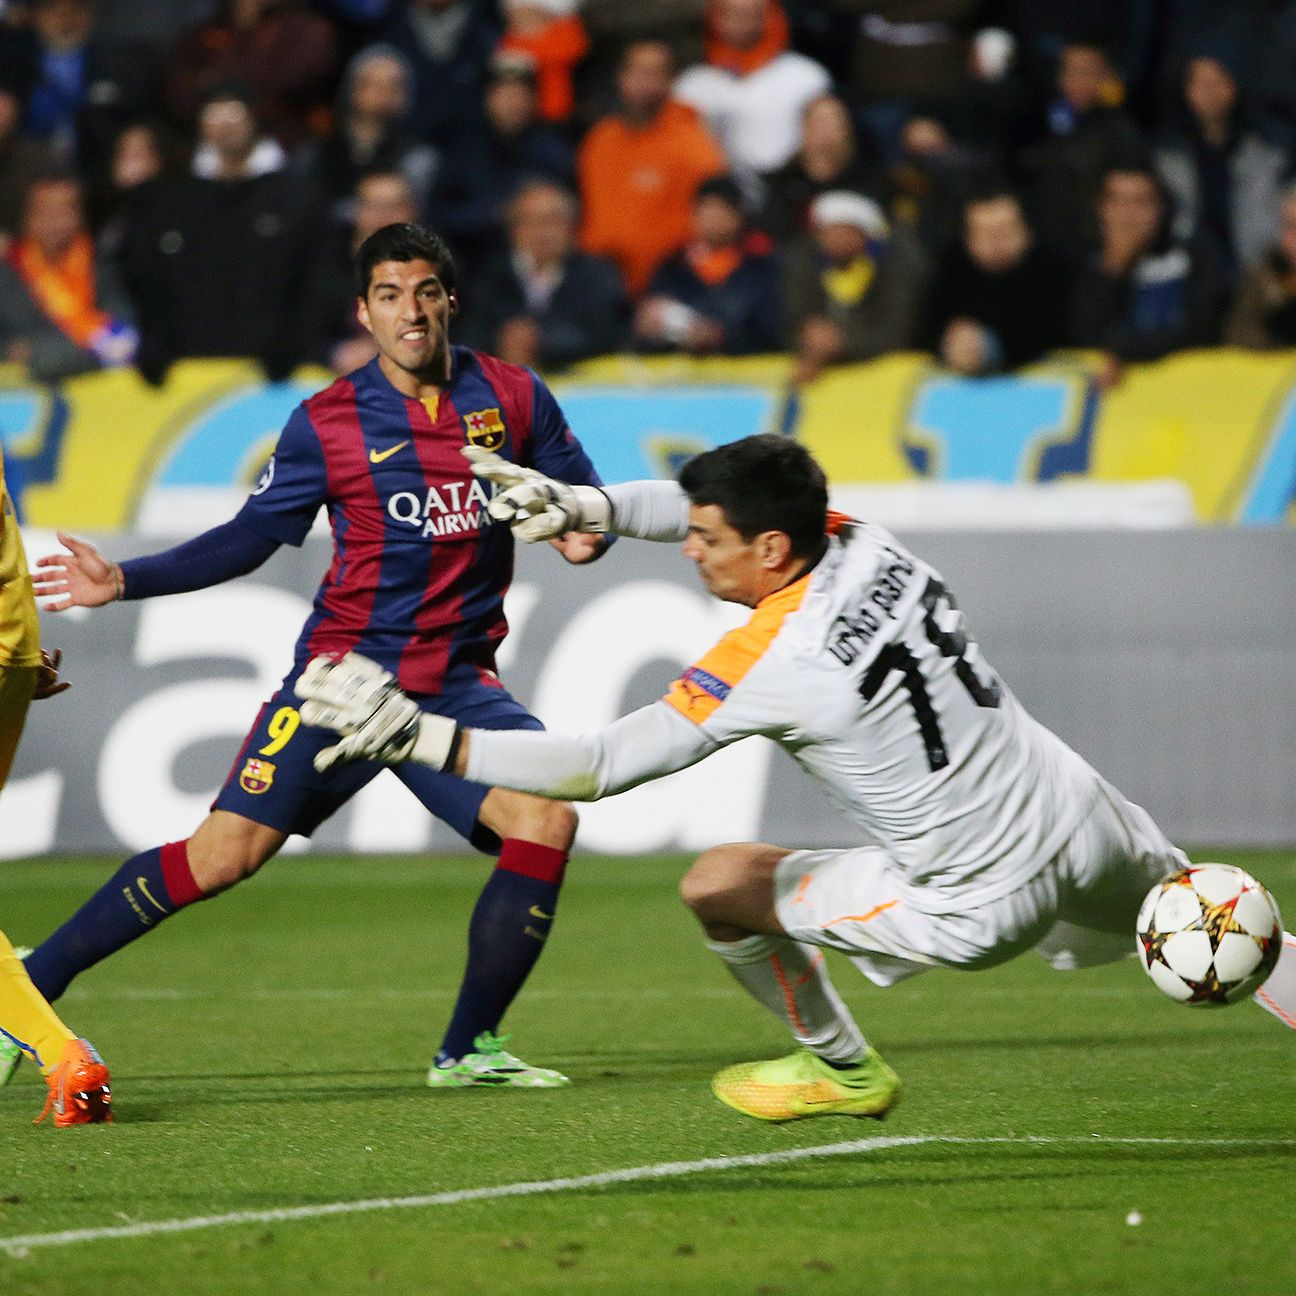 Luis Suarez got Barcelona rolling early against Apoel with a finely taken shot in the 27th minute.